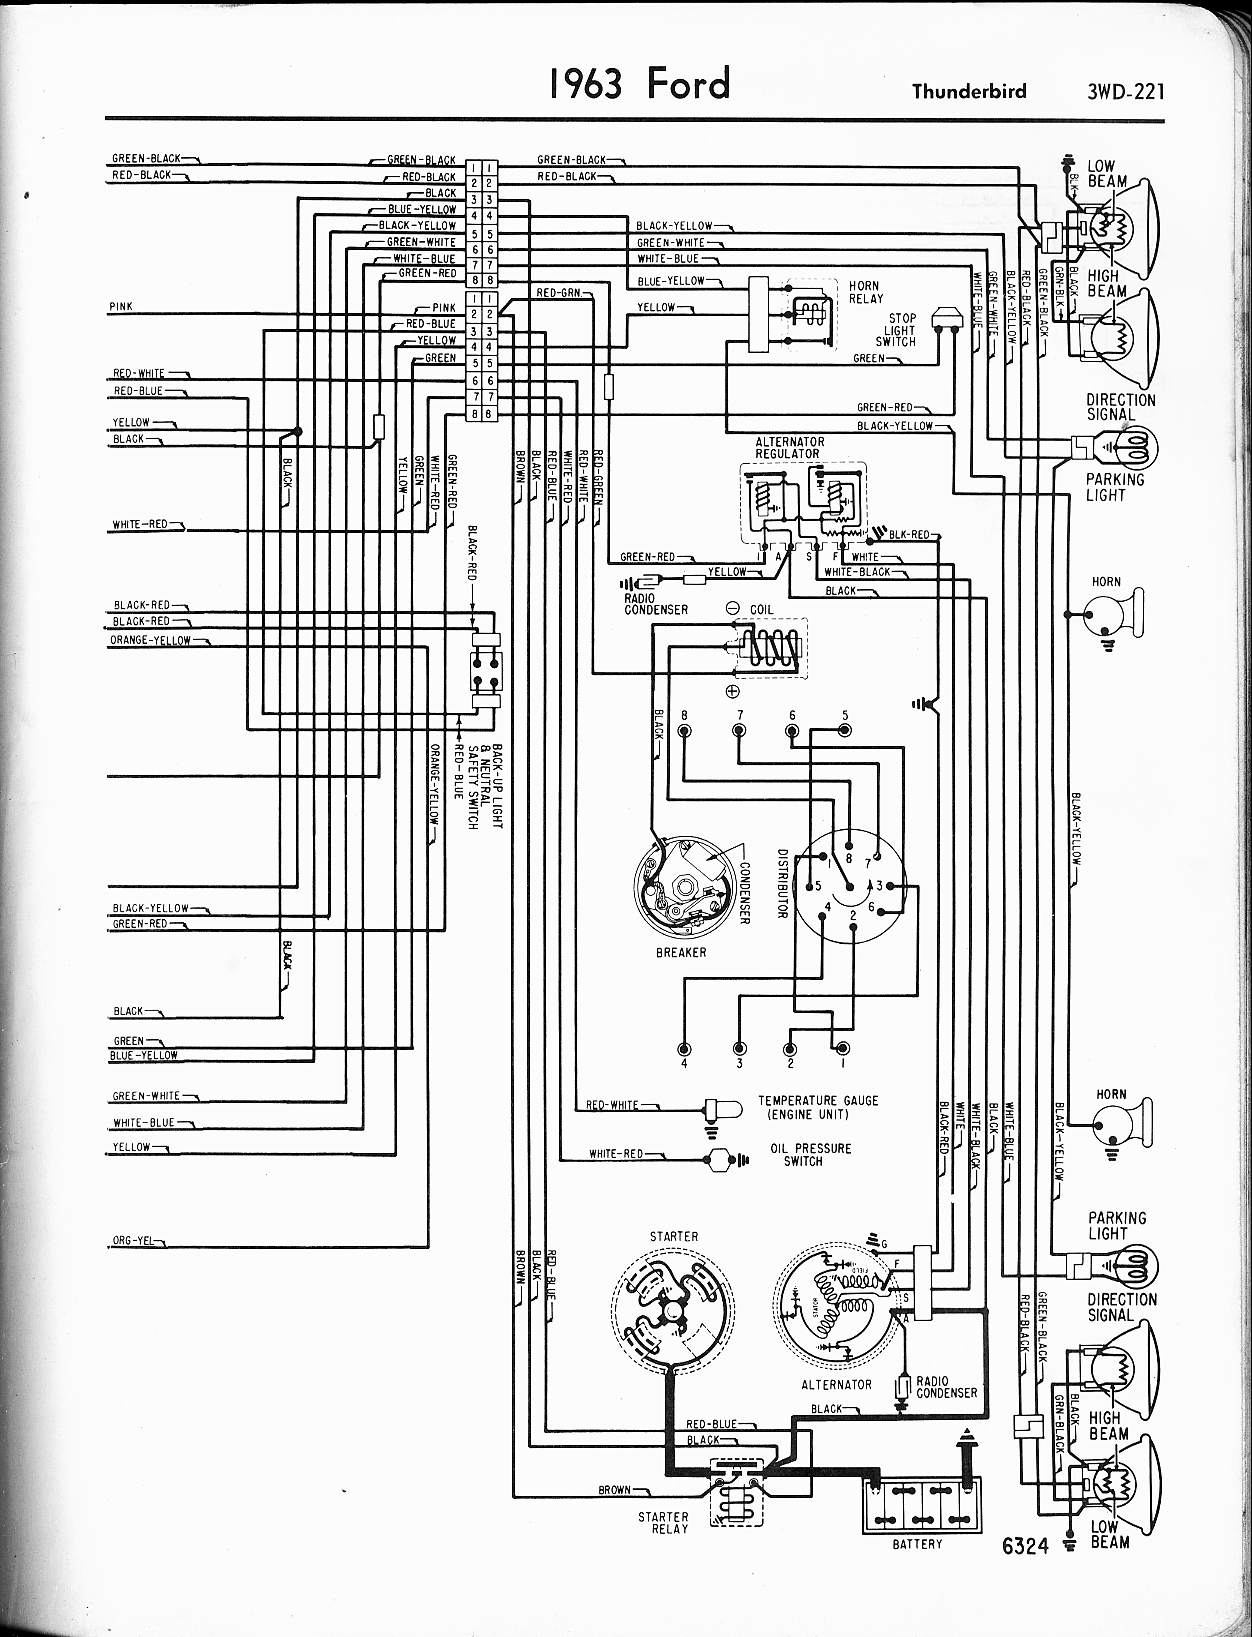 Diagram 1964 Ford Falcon Schematic Diagrams 1963 Ford Falcon Wiring-Diagram  66 Ford Falcon Wiring Diagram